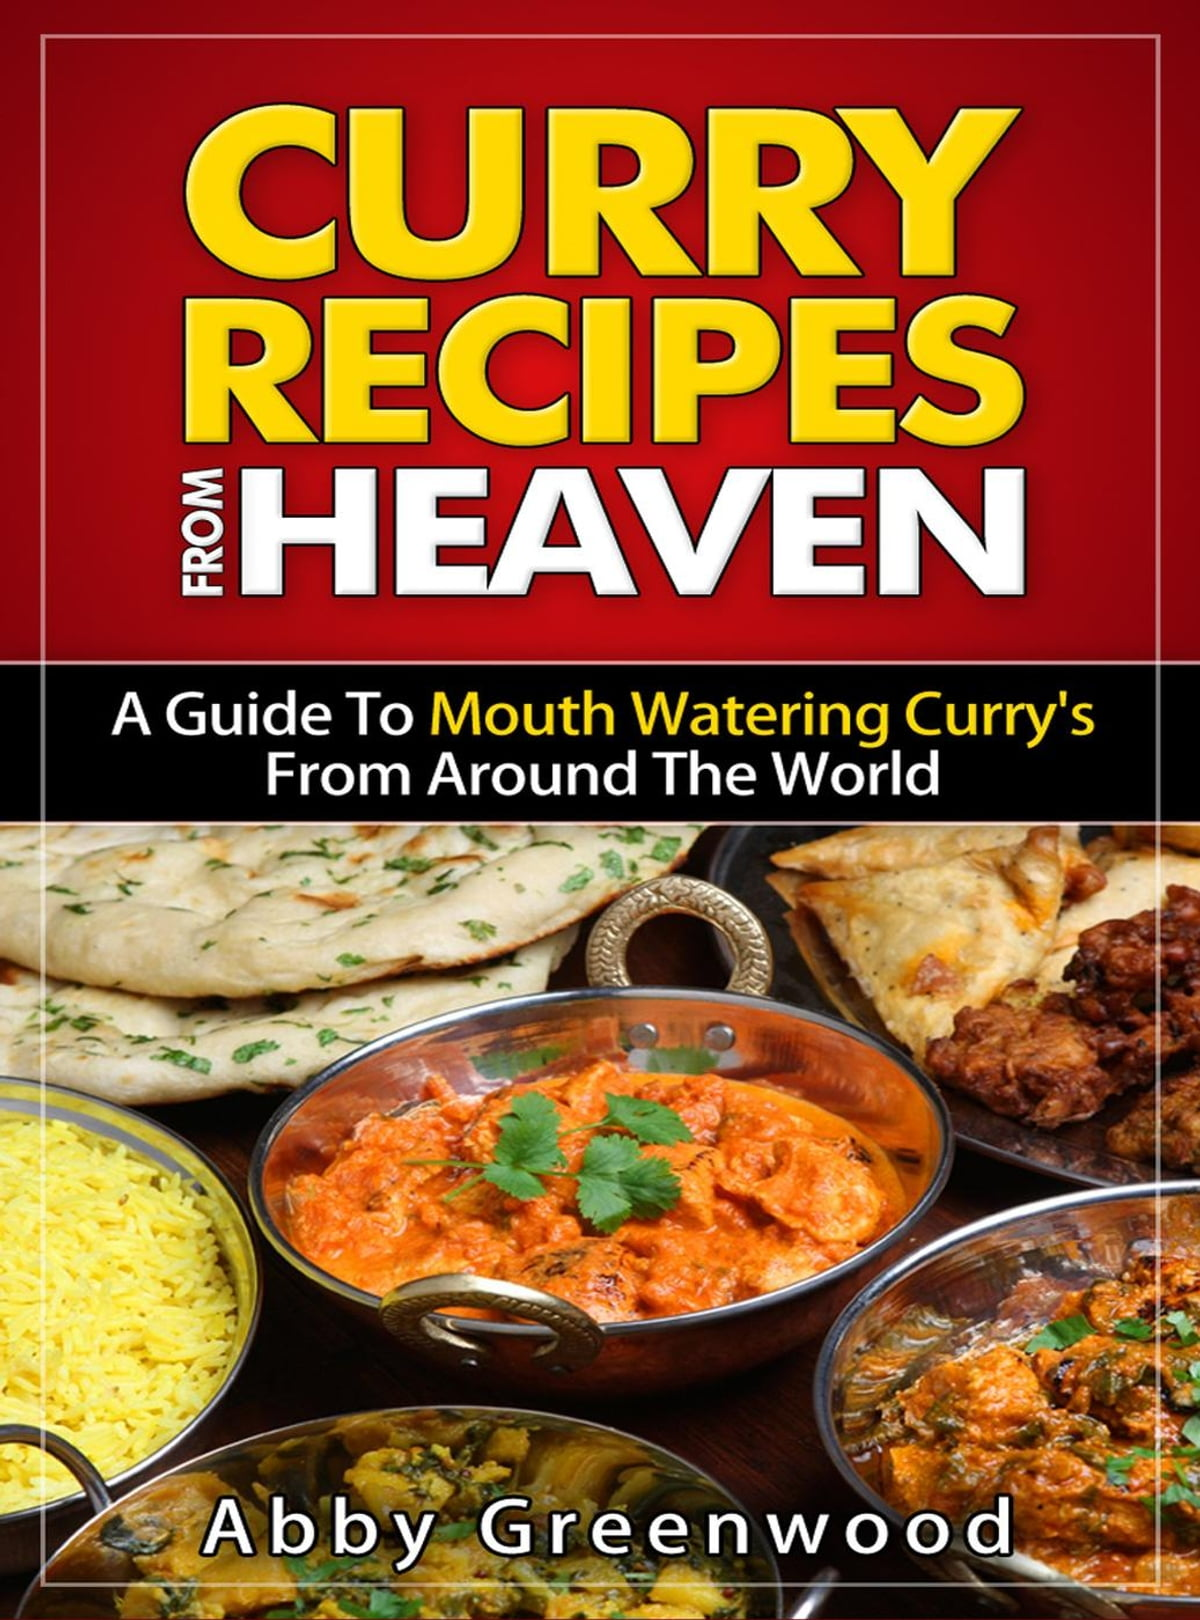 Cucina Greenwood Curry Recipes From Around The World Ebook By Abby Greenwood Rakuten Kobo